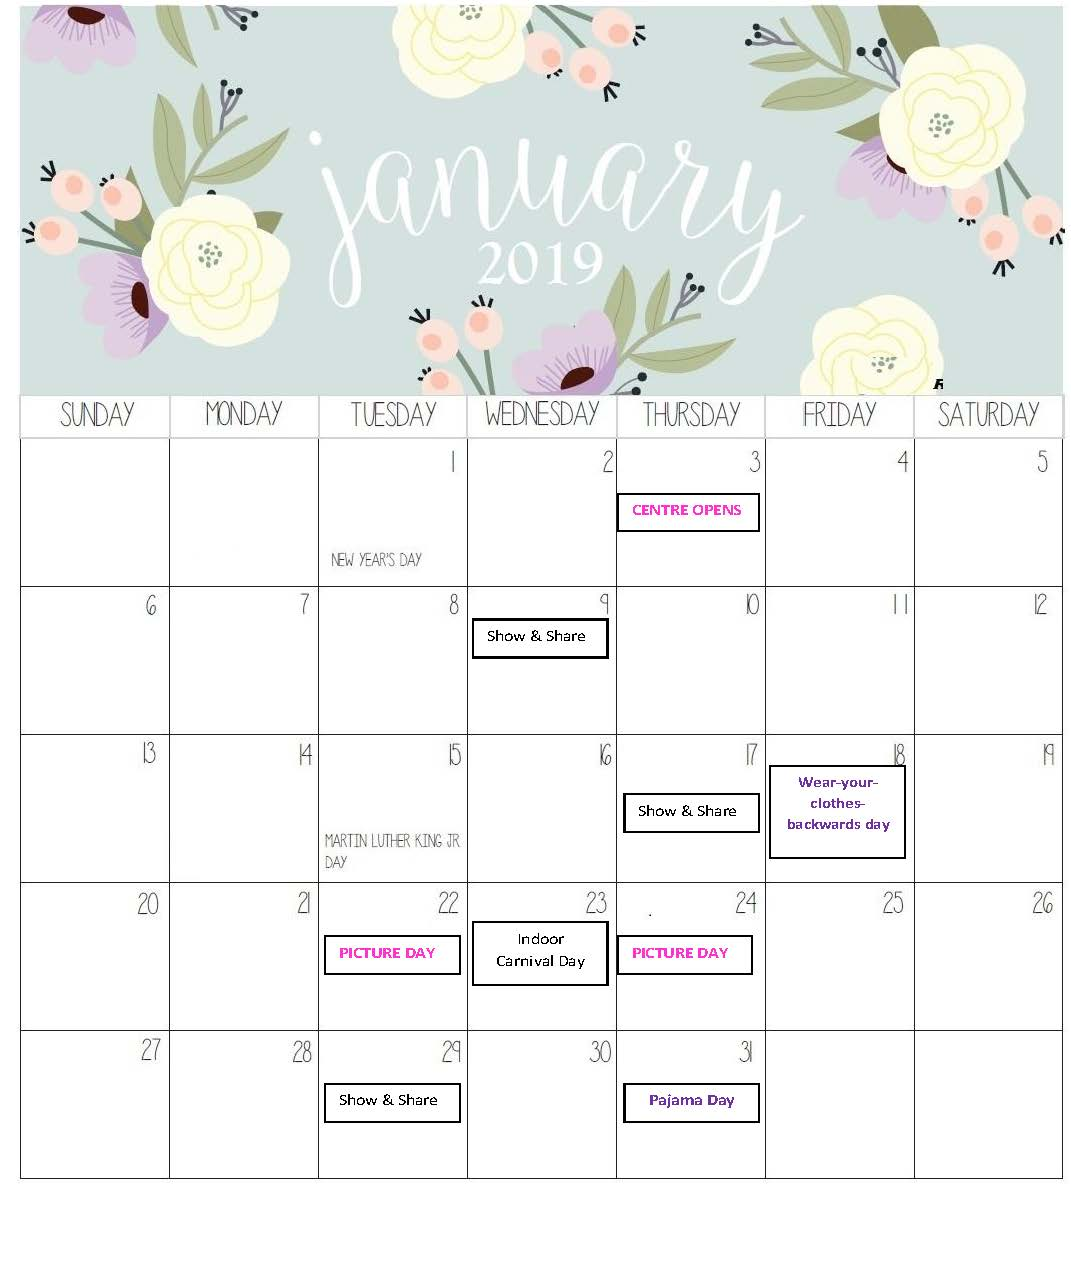 JAN-AND-FEB-2019-CALENDARS_Page_1.jpg